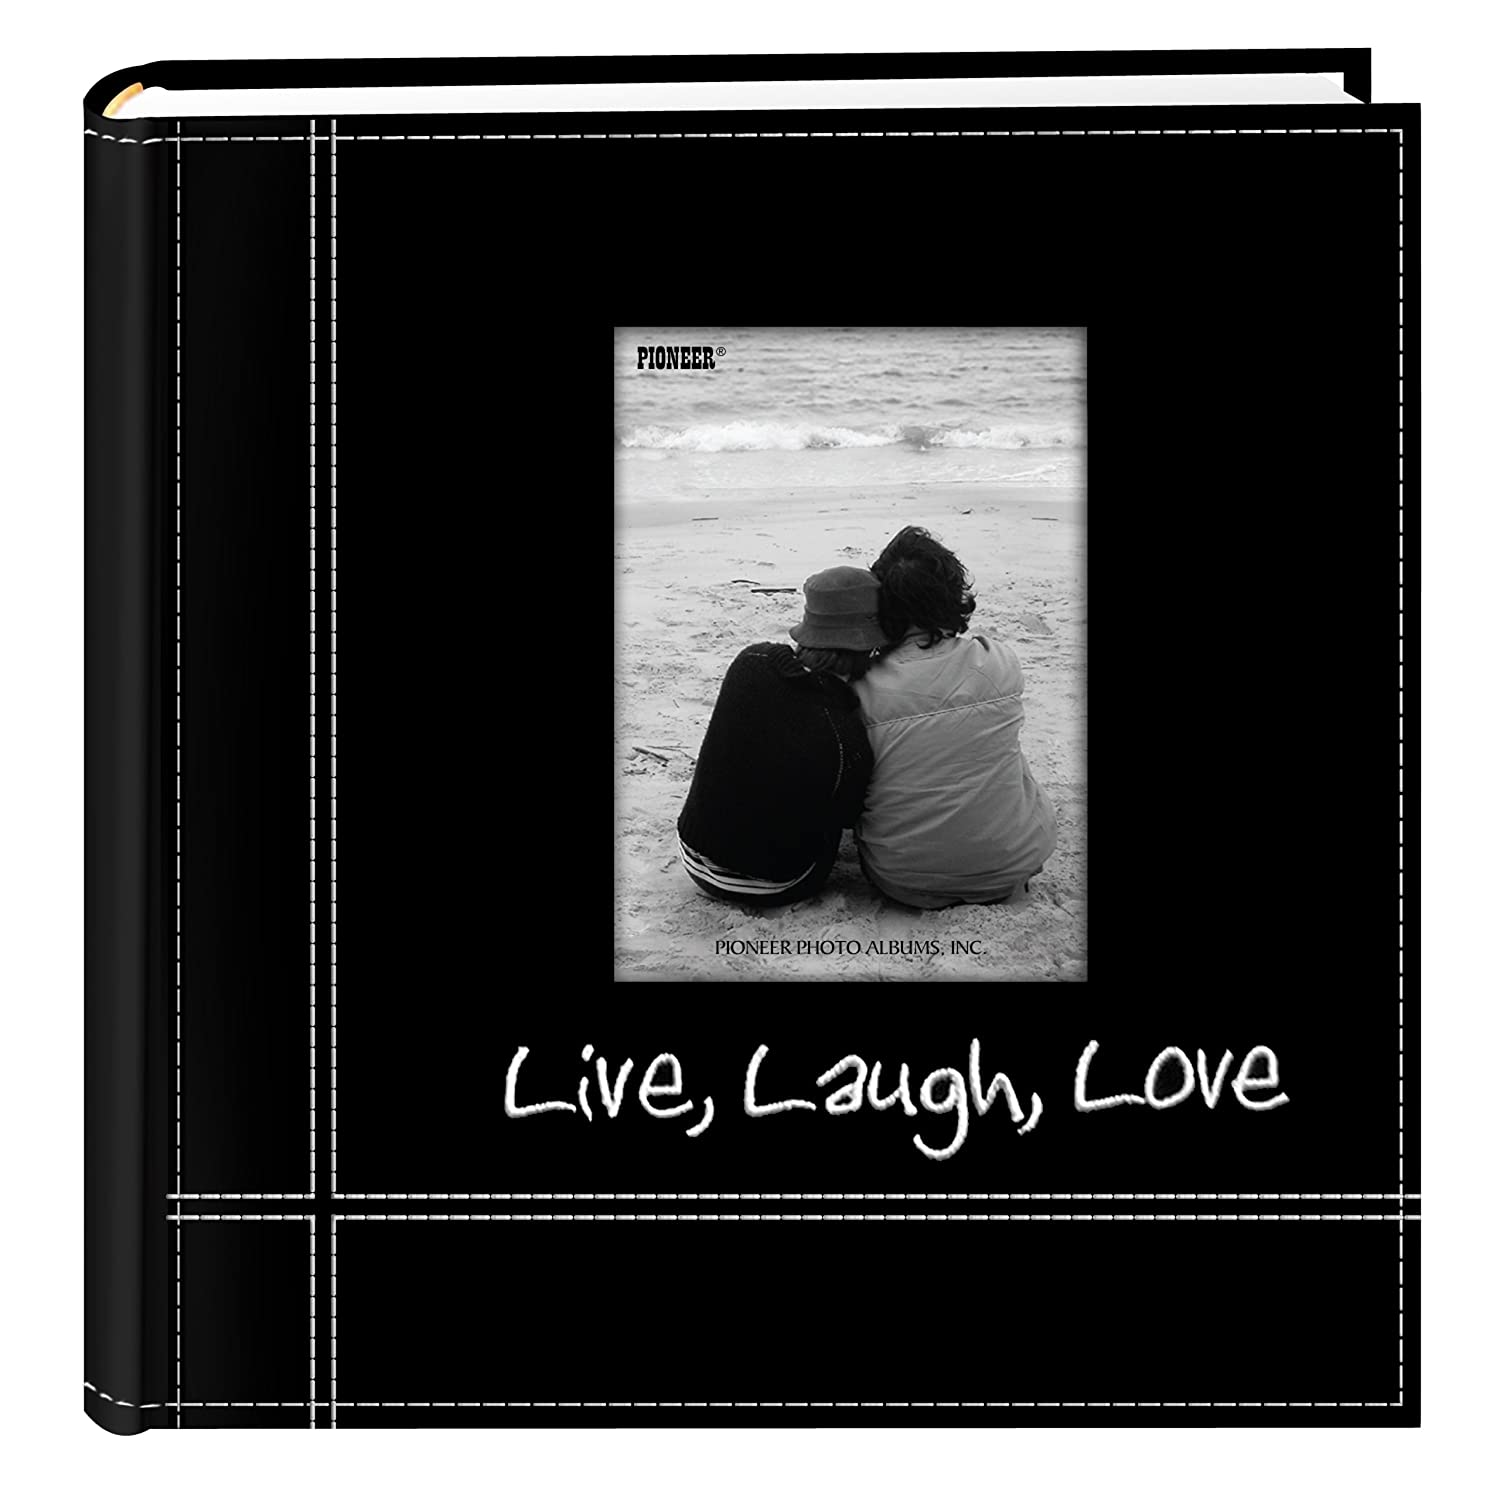 Pioneer Photo Albums Embroidered Live Laugh Love Black Sewn Leatherette Frame Cover Album For 4x6 Prints